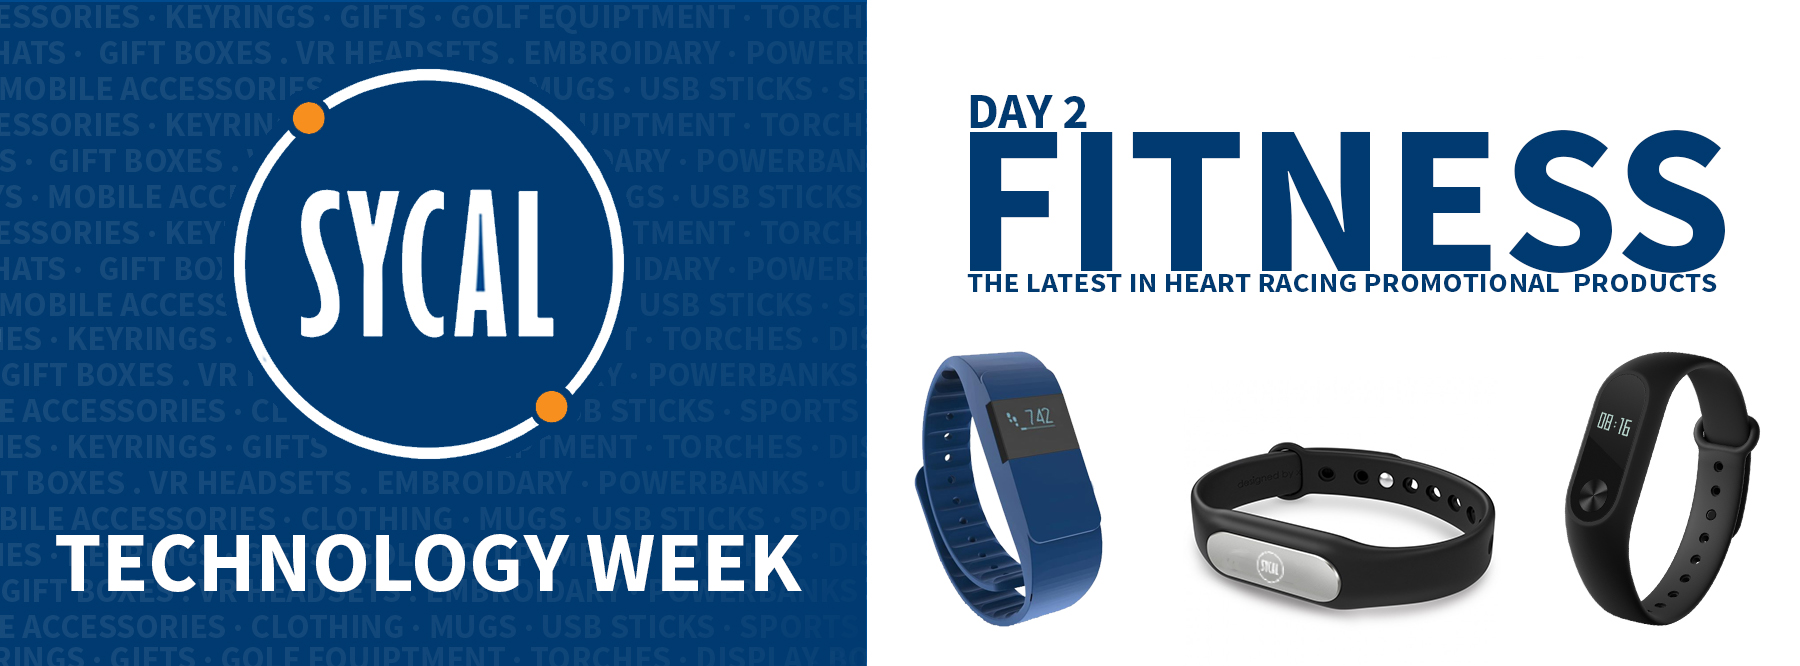 PROMOTIONAL FITNESS TRACKER